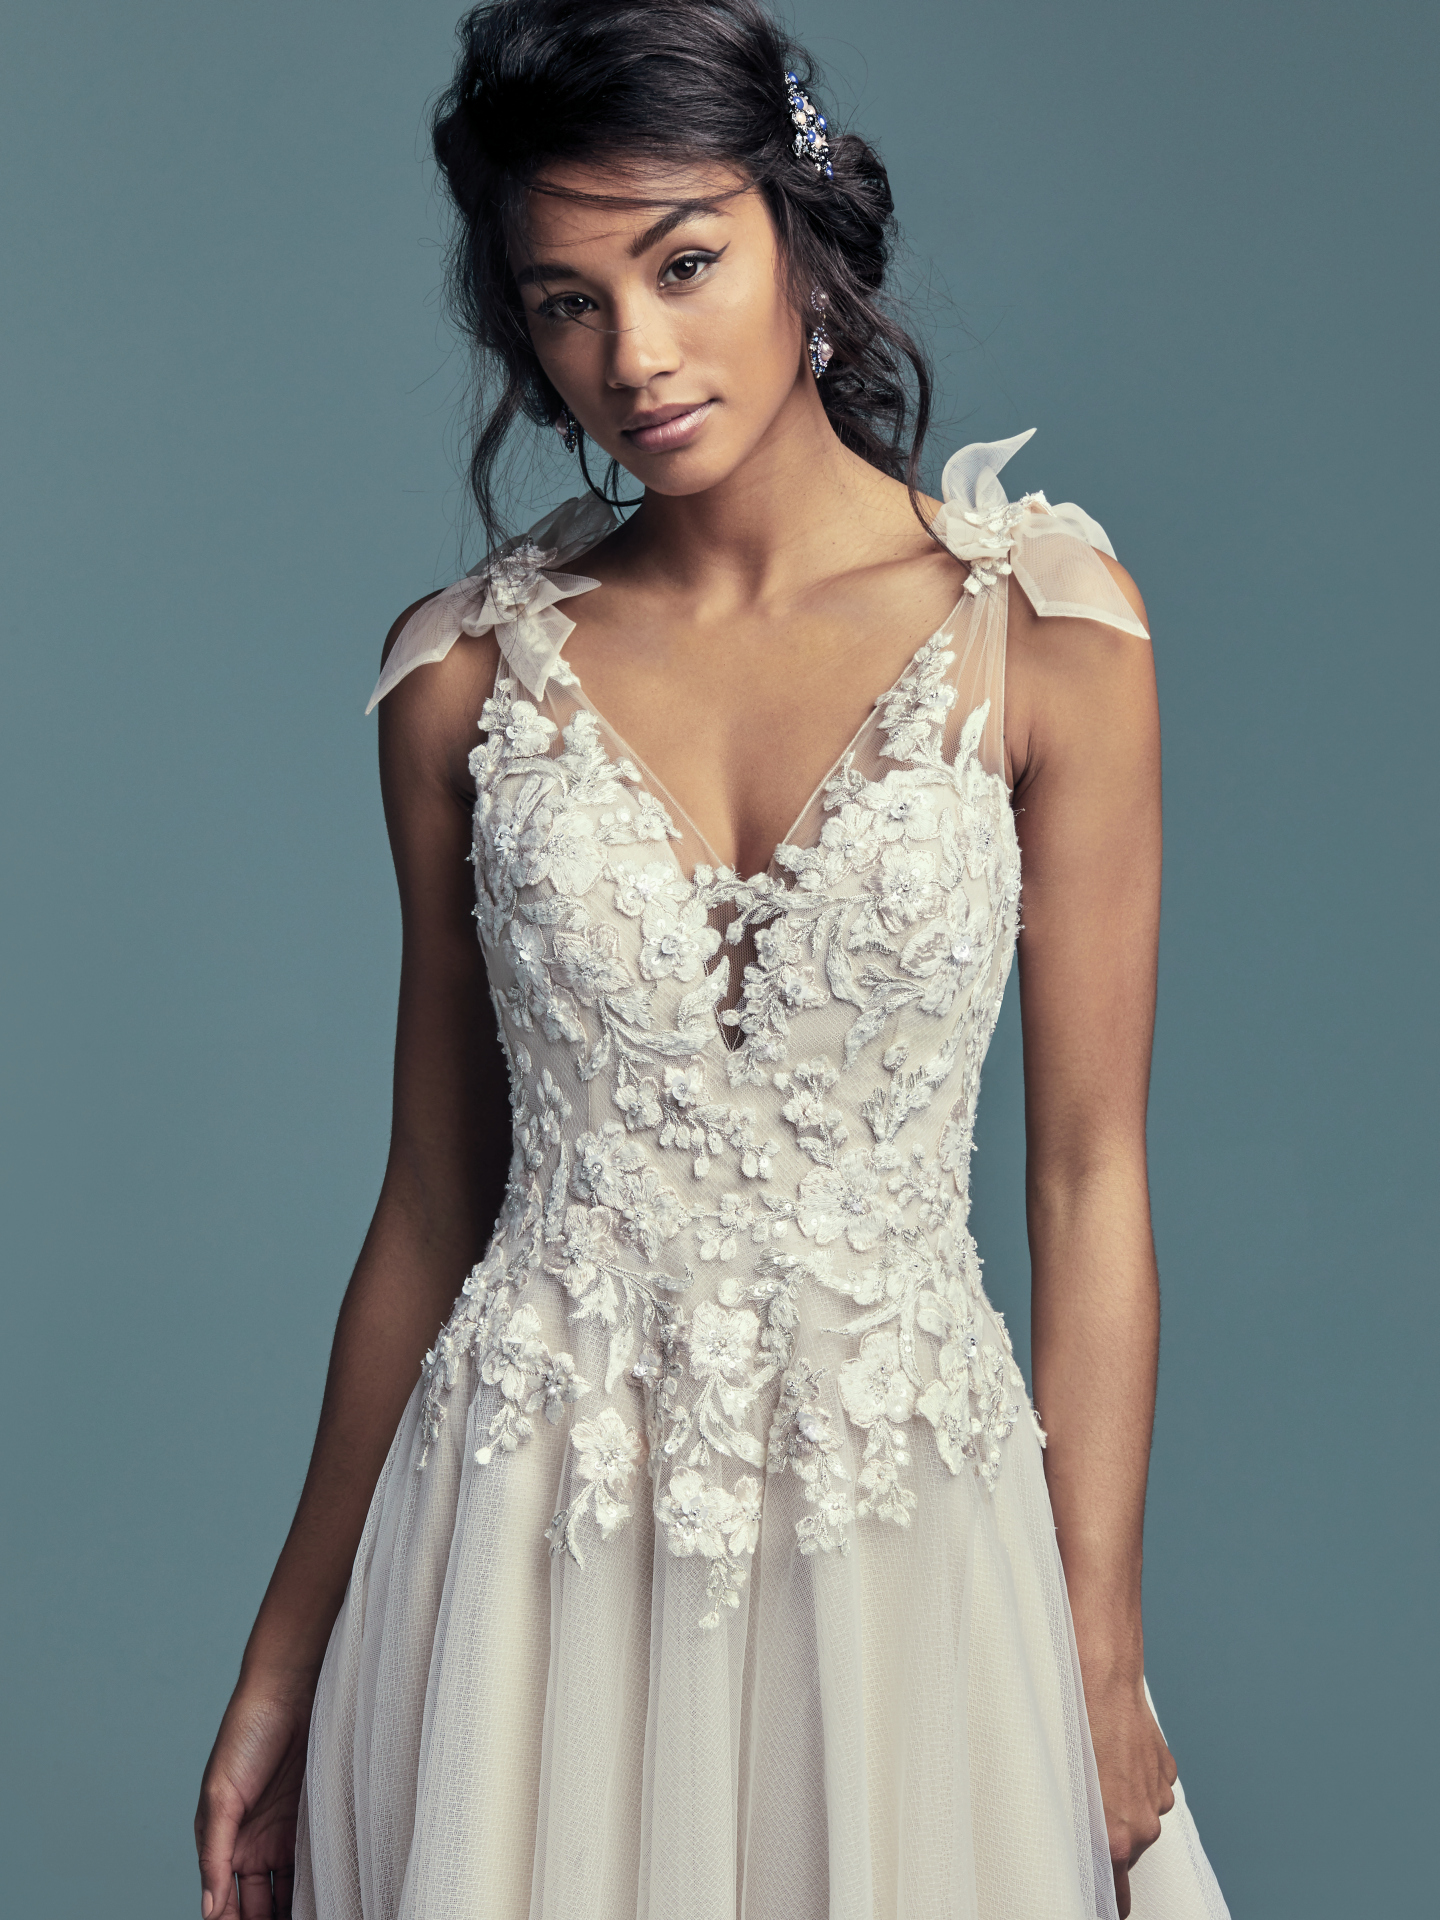 New Boho Wedding Dresses from the Lucienne Collection - Farron by Maggie Sottero